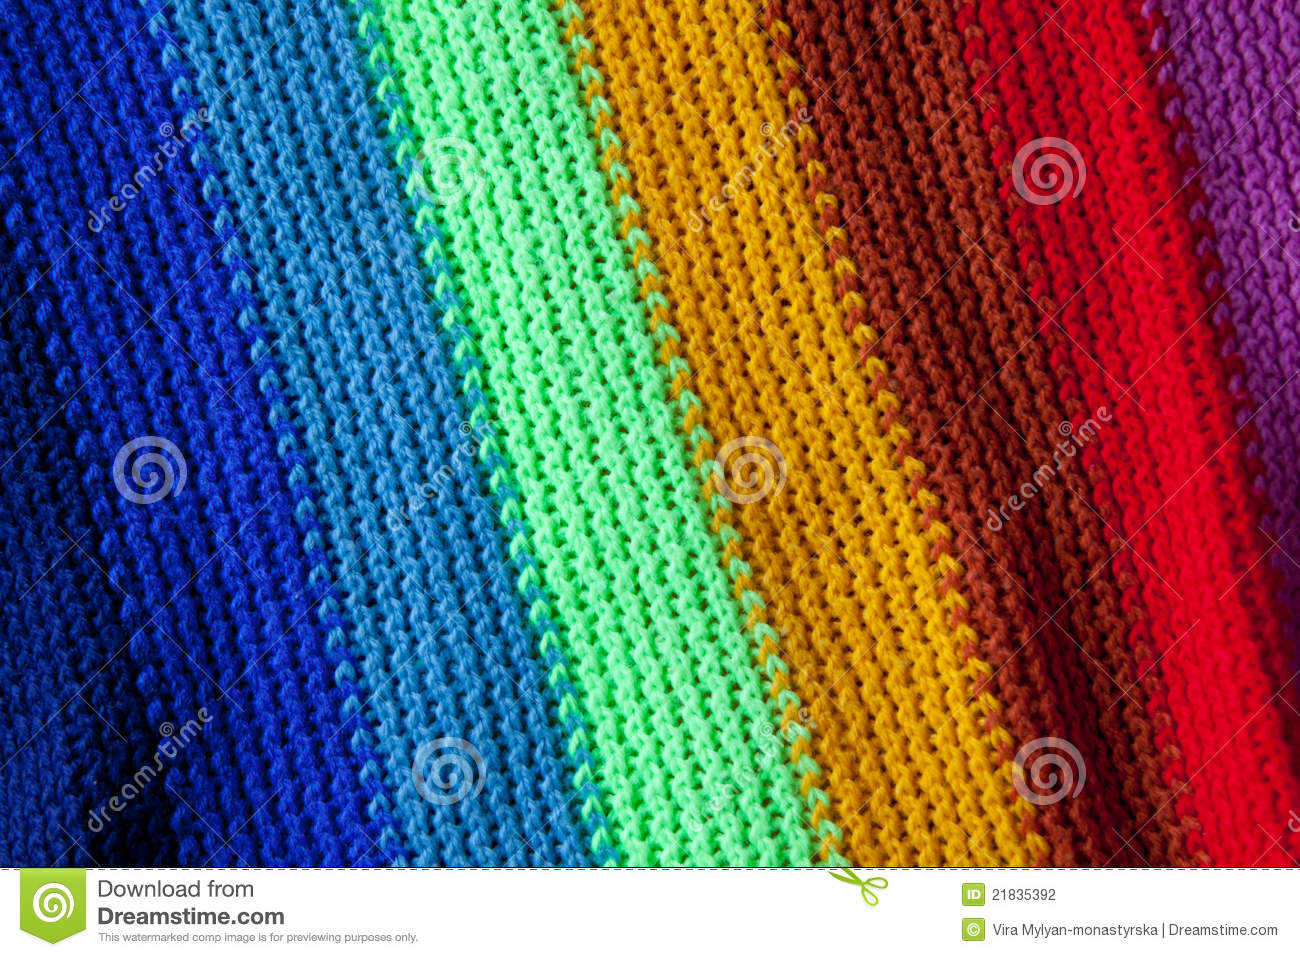 Knitting Pattern For Rainbow Scarf : Knitted Rainbow Scarf Stock Photography - Image: 21835392